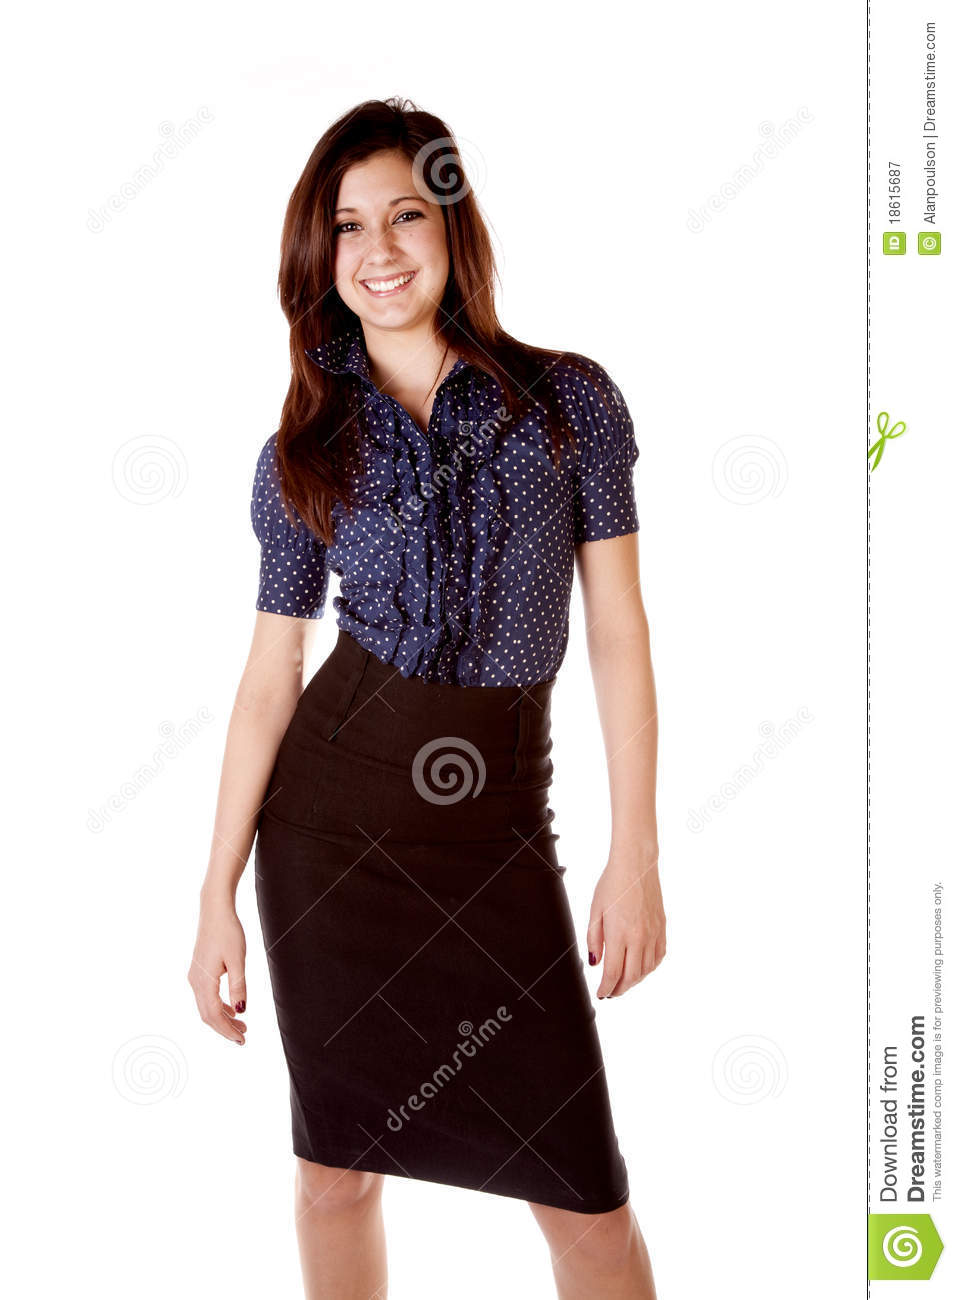 in blue top and black skirt smile royalty free stock